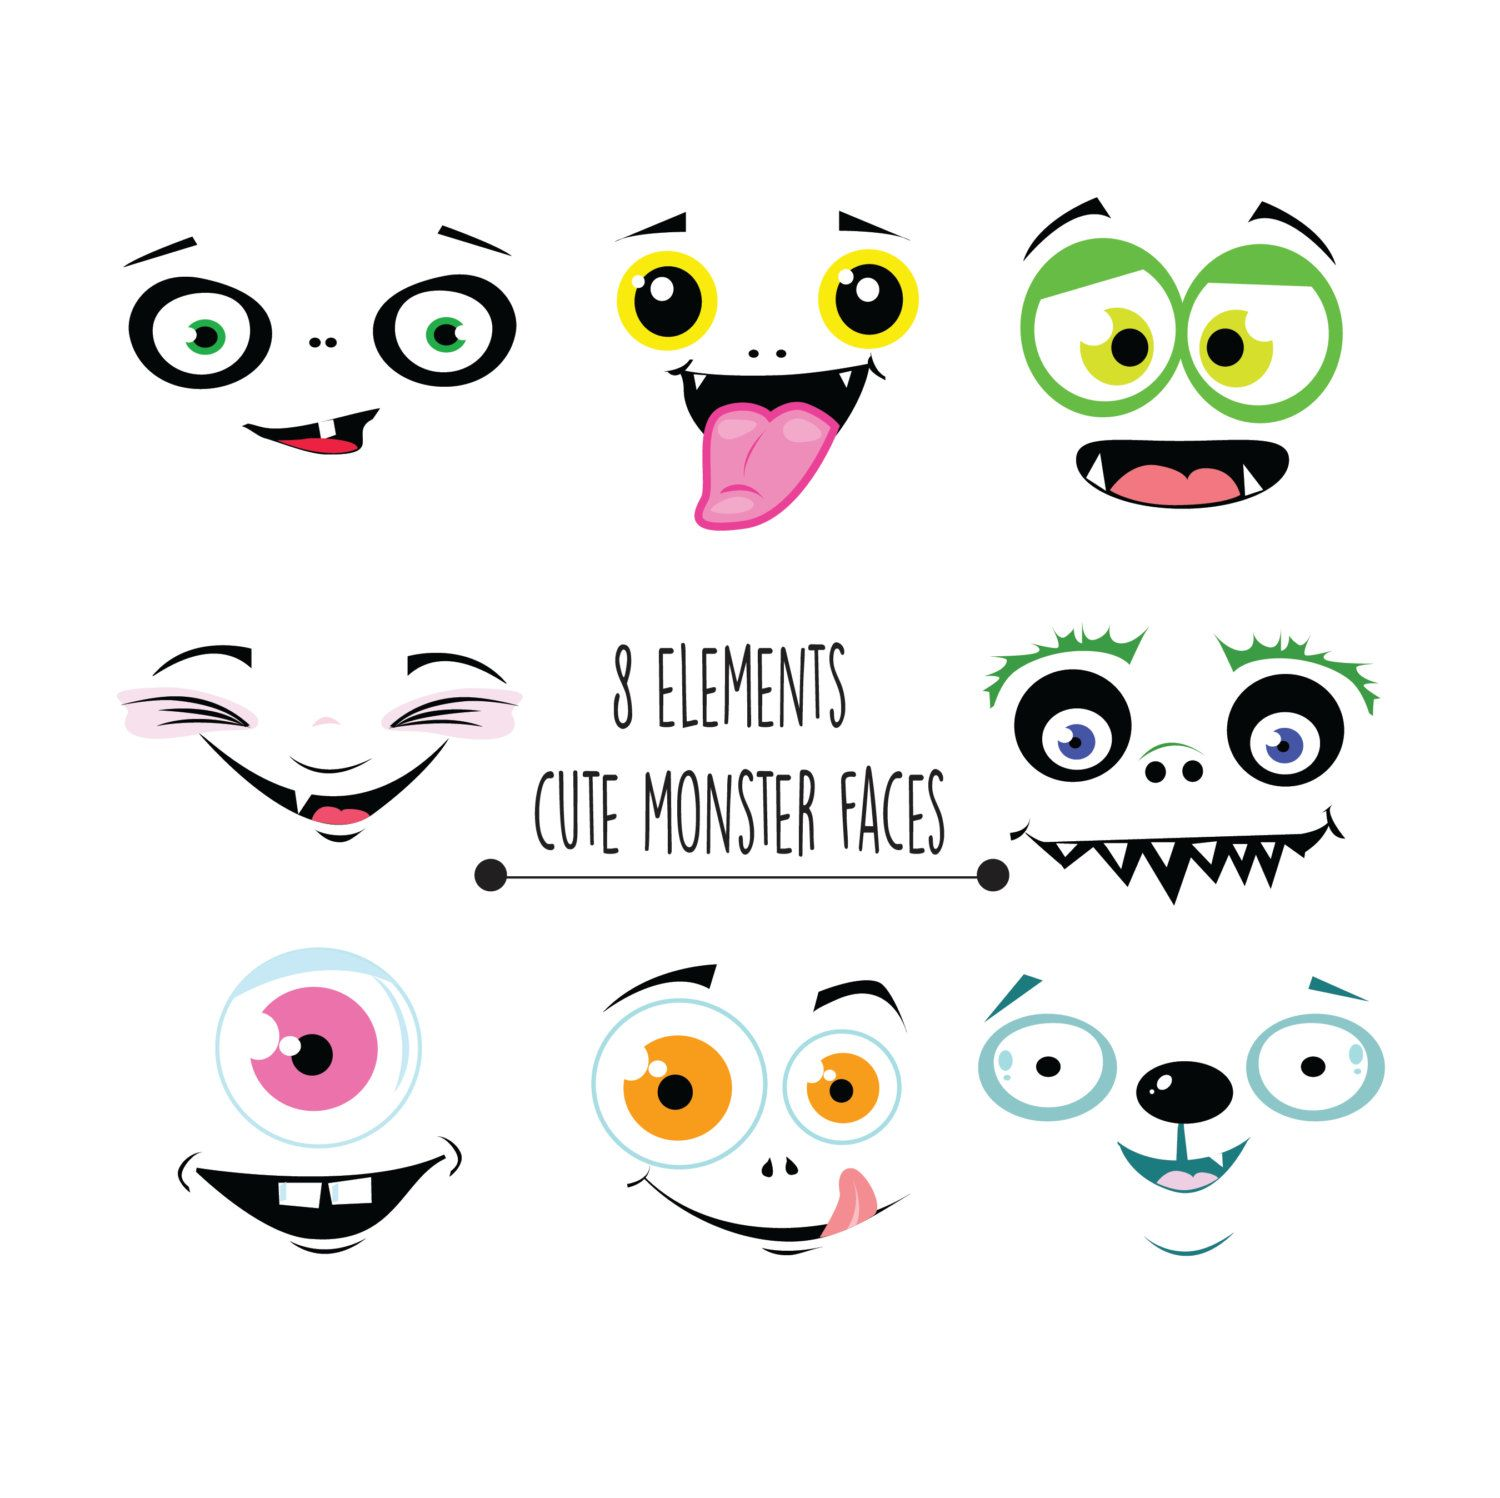 Monster face clipart, monster faces clipart, funny faces.